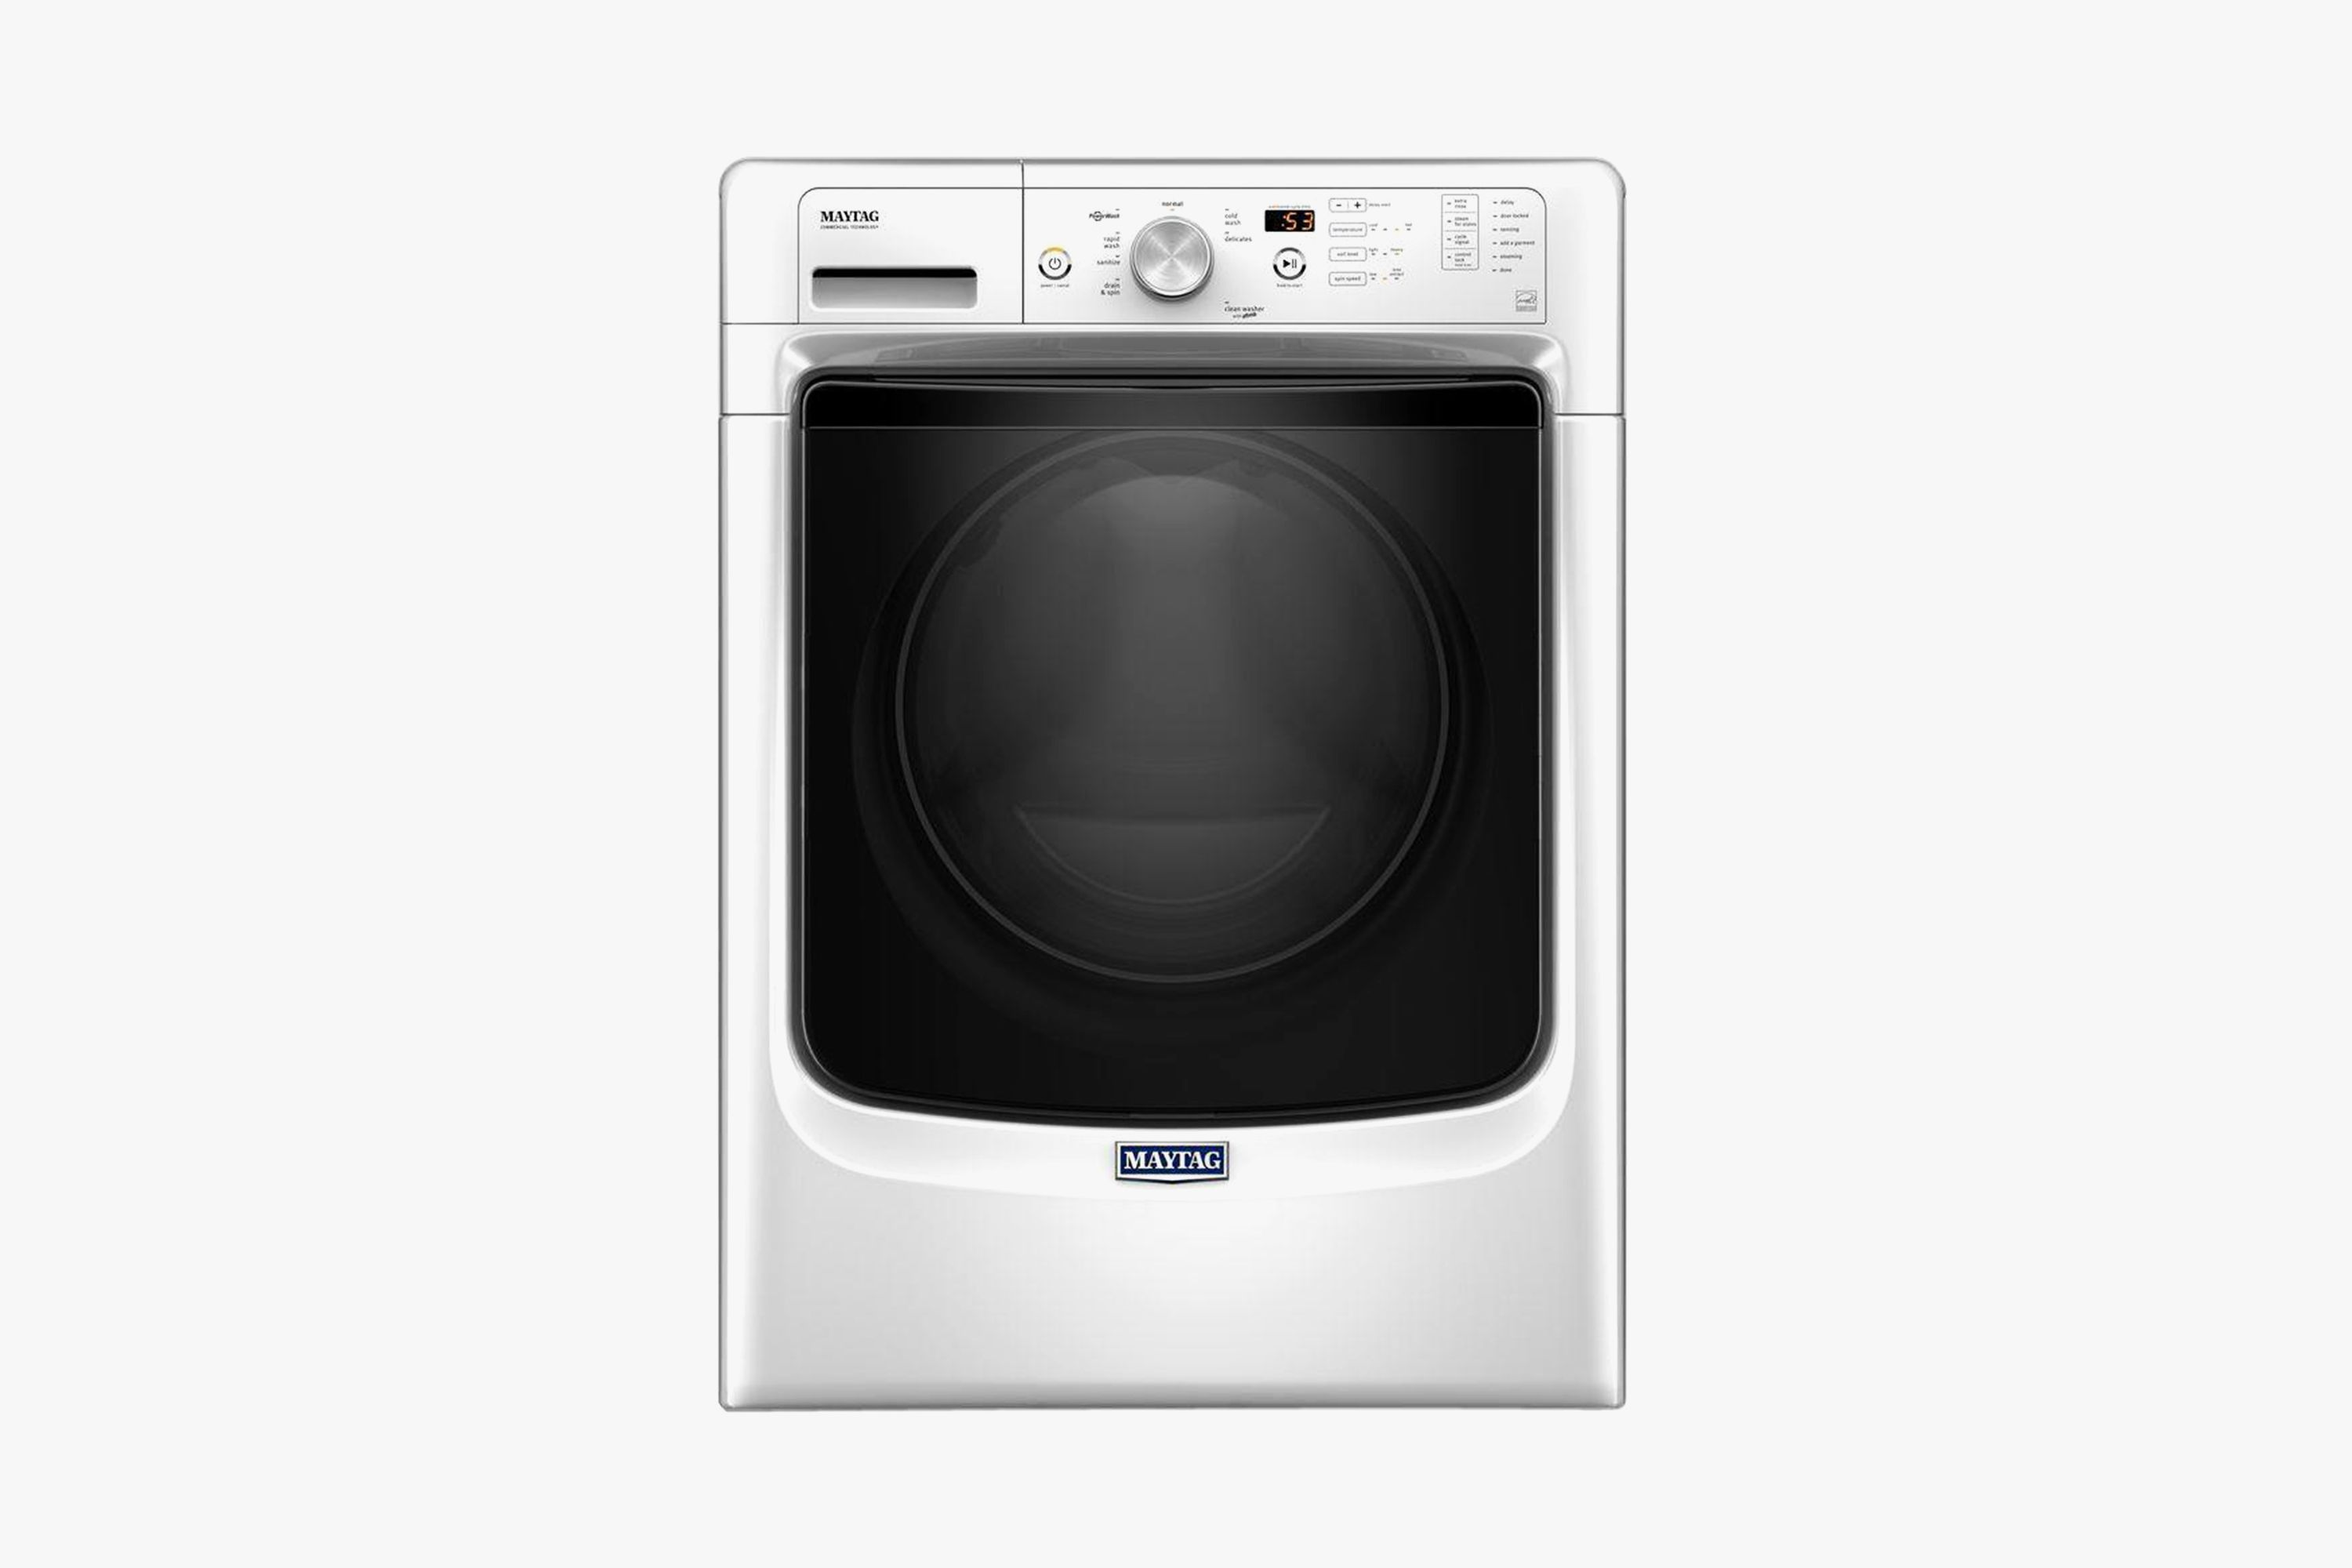 maytag mhw3505fw washing machine